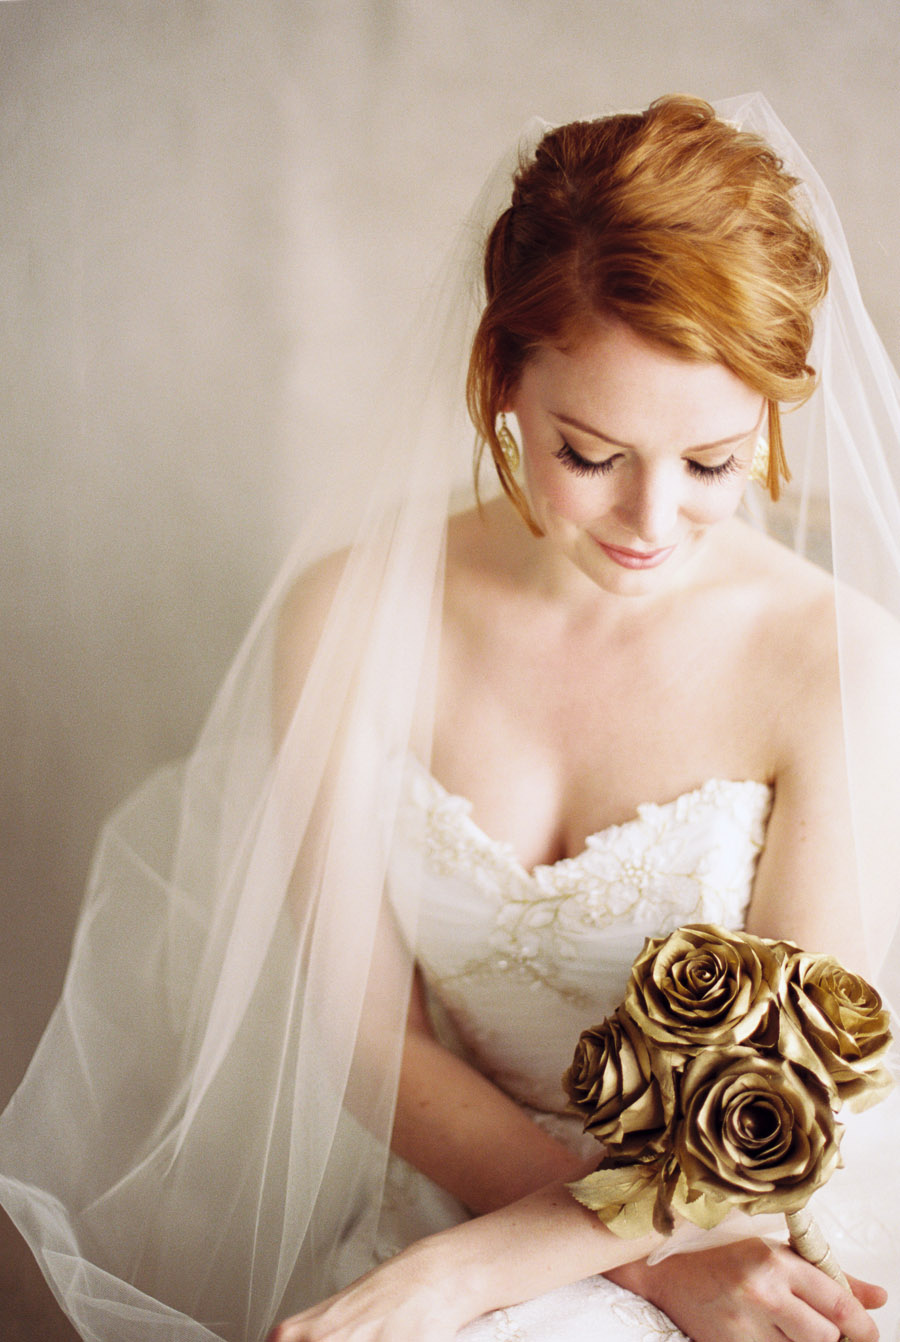 Drop veil with wedding dress and gold bouquet | by Lara Lam Photography